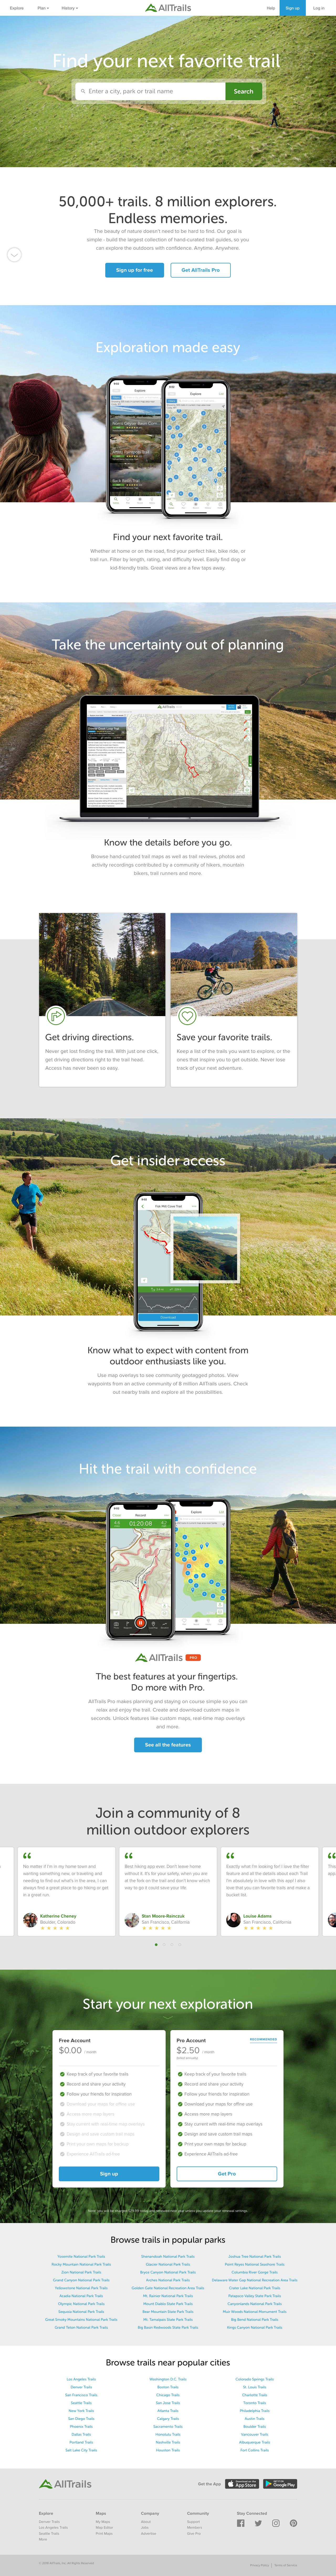 Screenshot of alltrails.com - Outdoor Guides | Hiking, Camping, Trail Running, Dog Friendly Trails | AllTrails - captured June 13, 2018